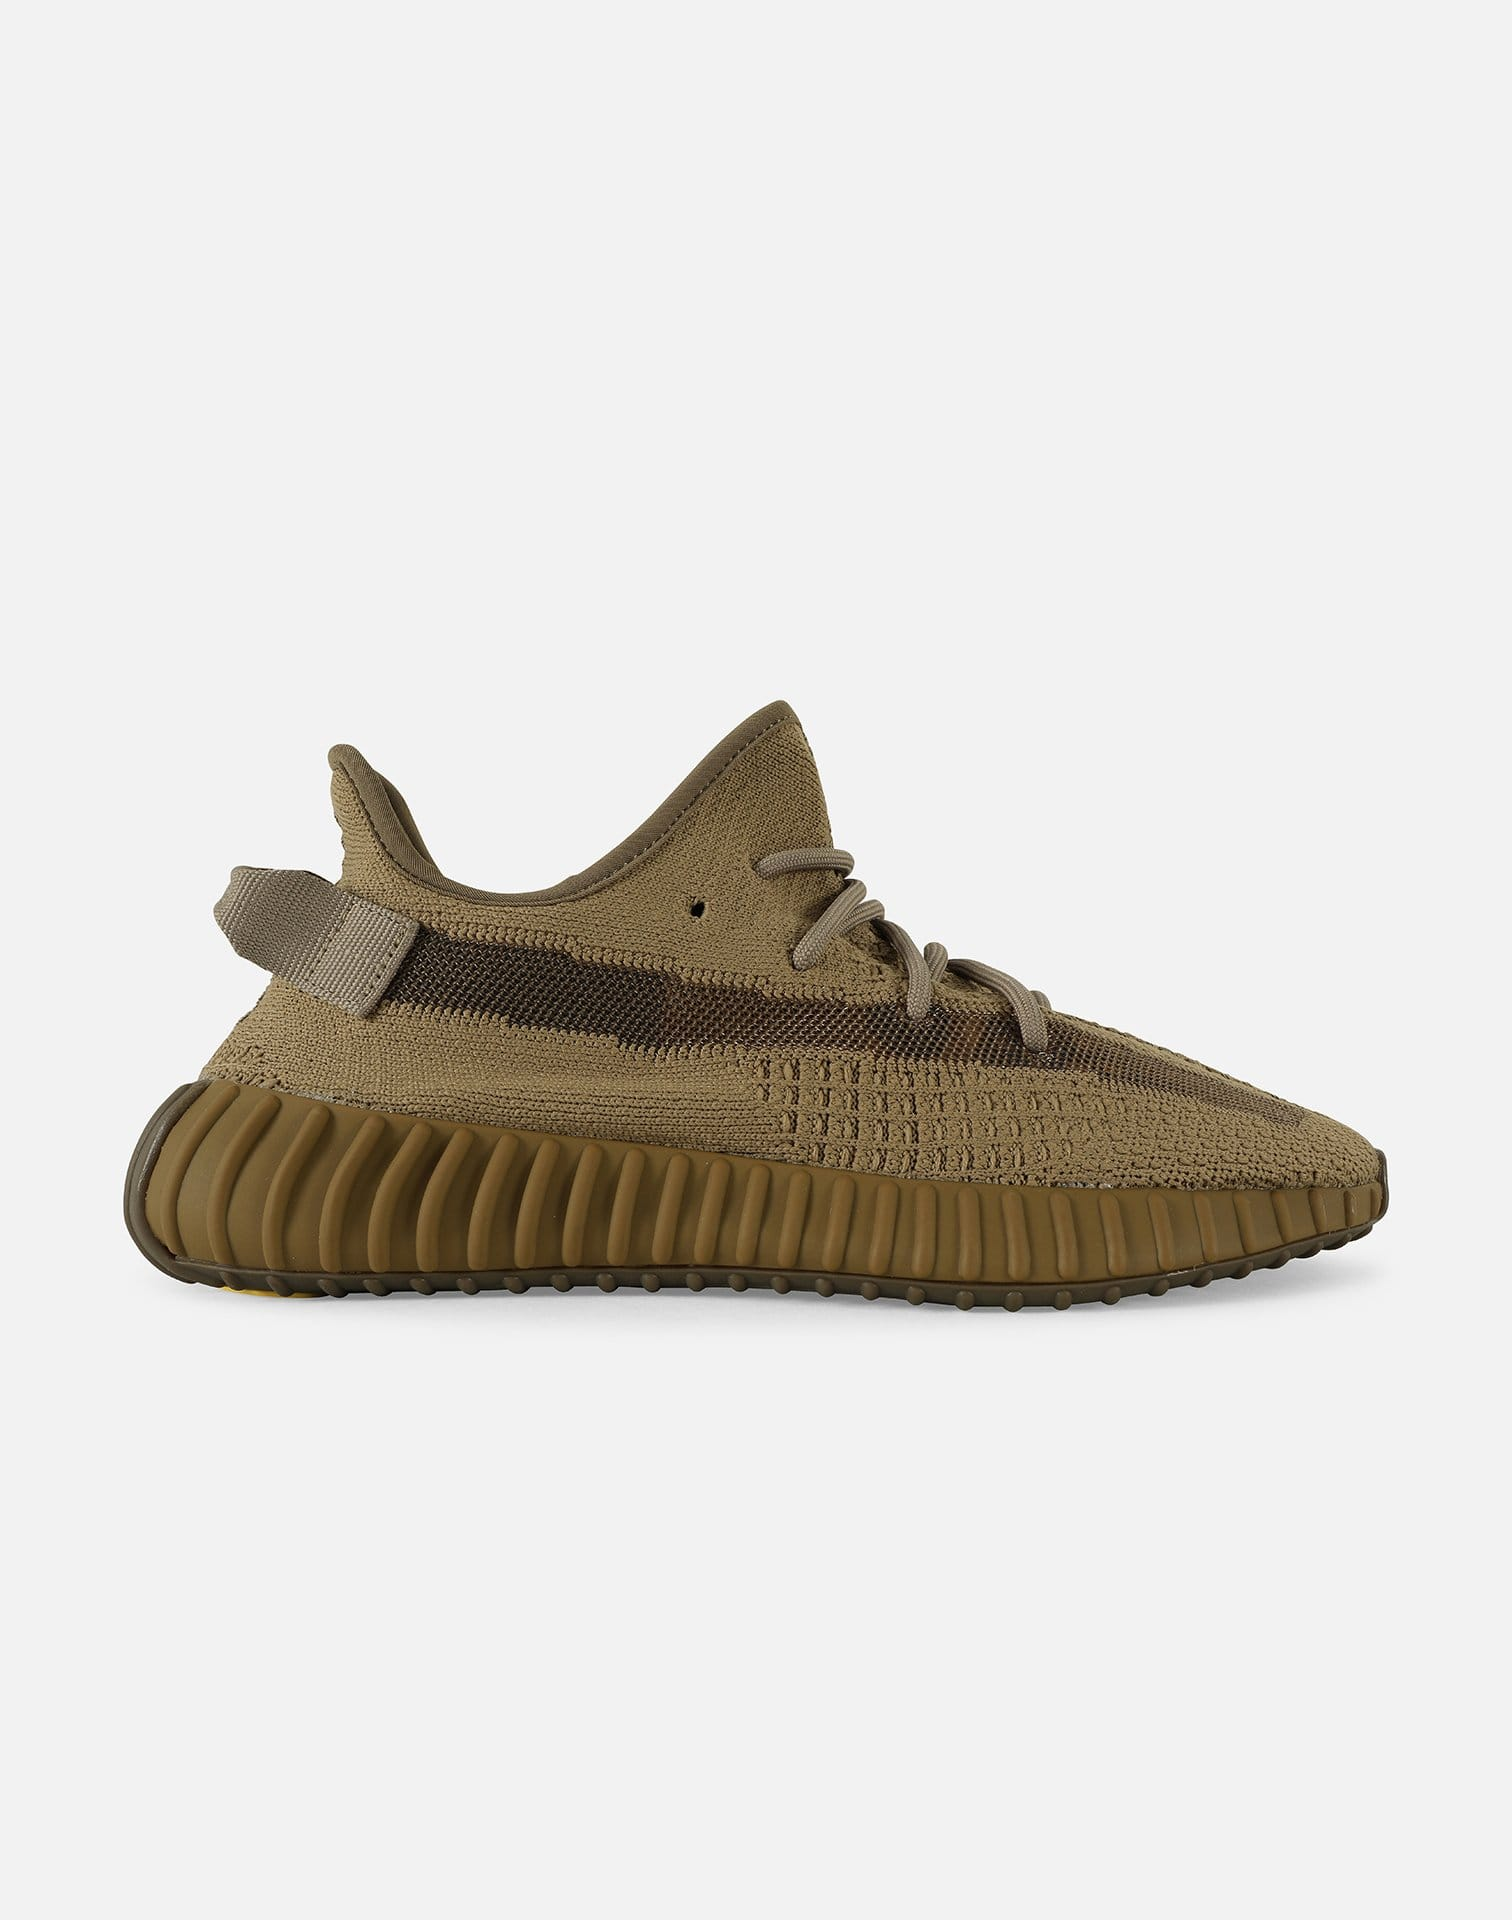 Adidas YEEZY BOOST 350 V2 'EARTH'